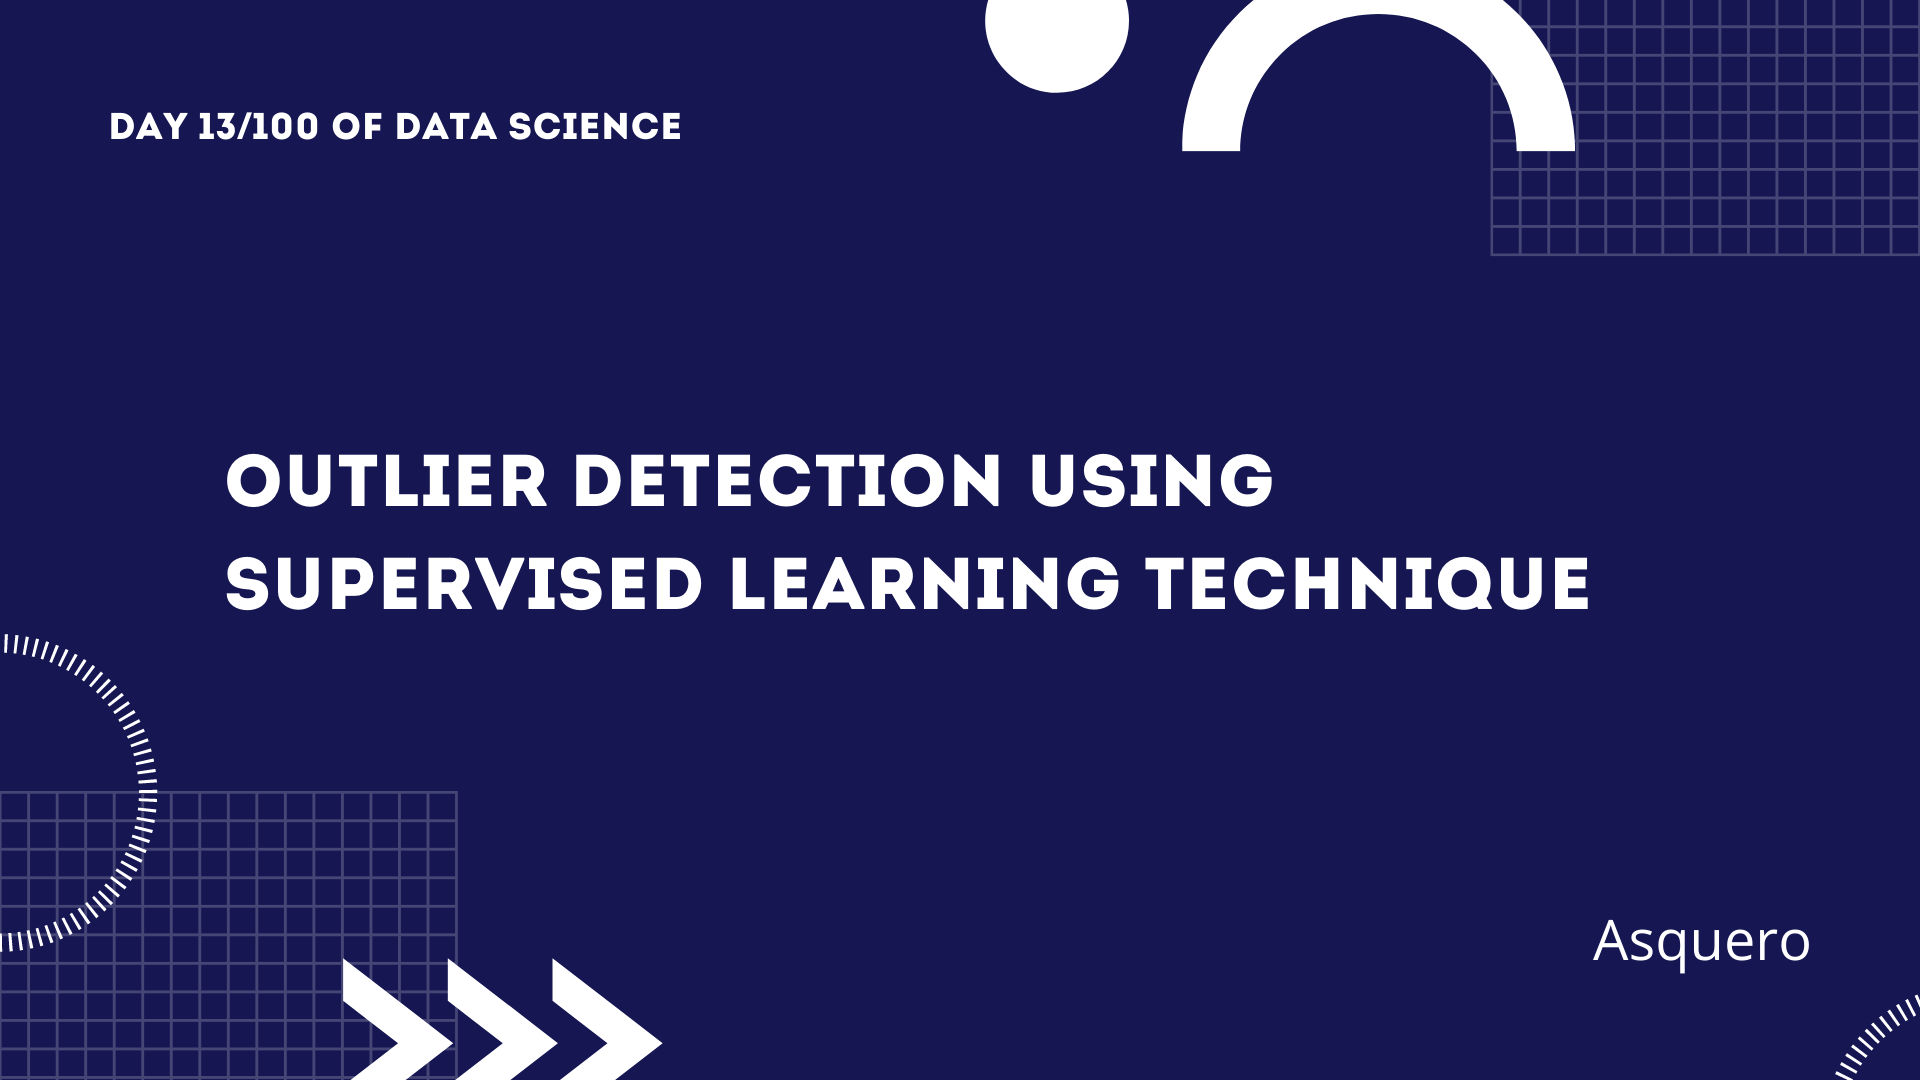 Outlier Detection using Supervised Learning Technique